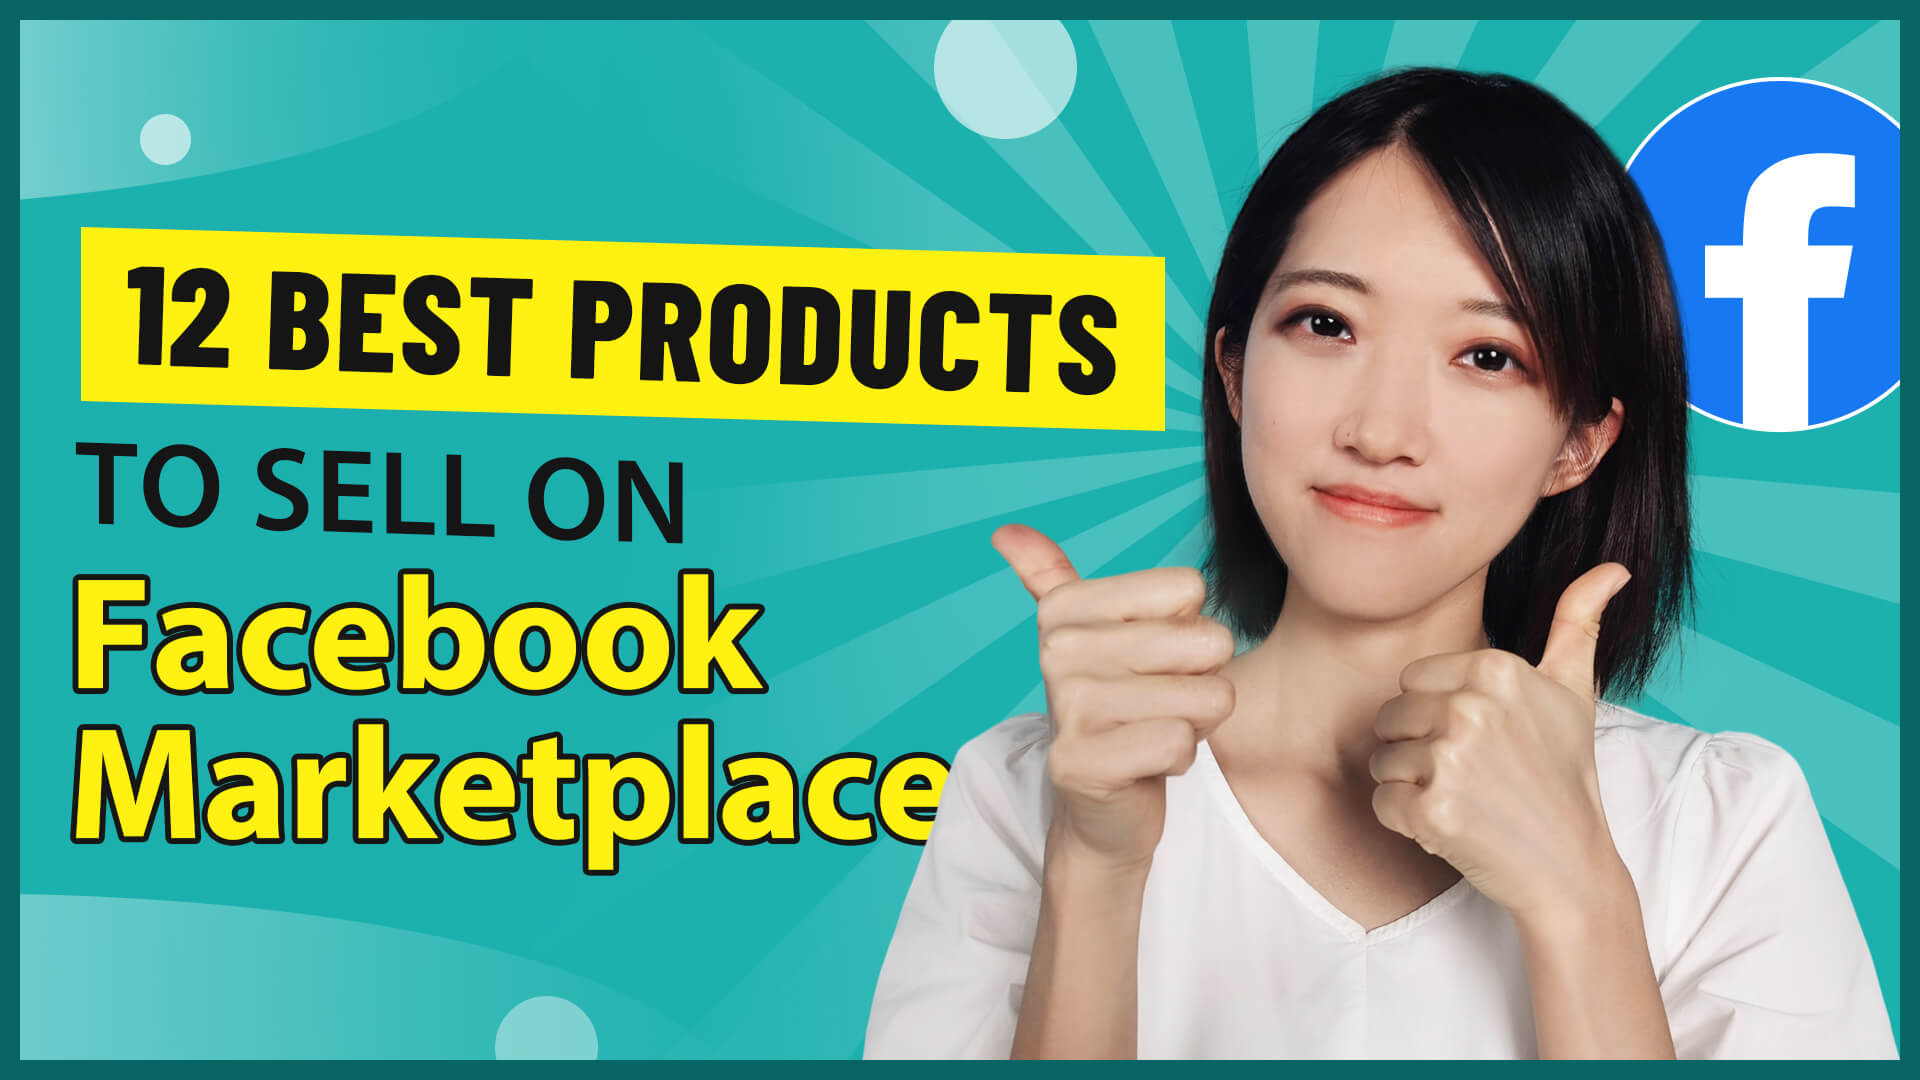 12 Best Products to Sell on Facebook Marketplace